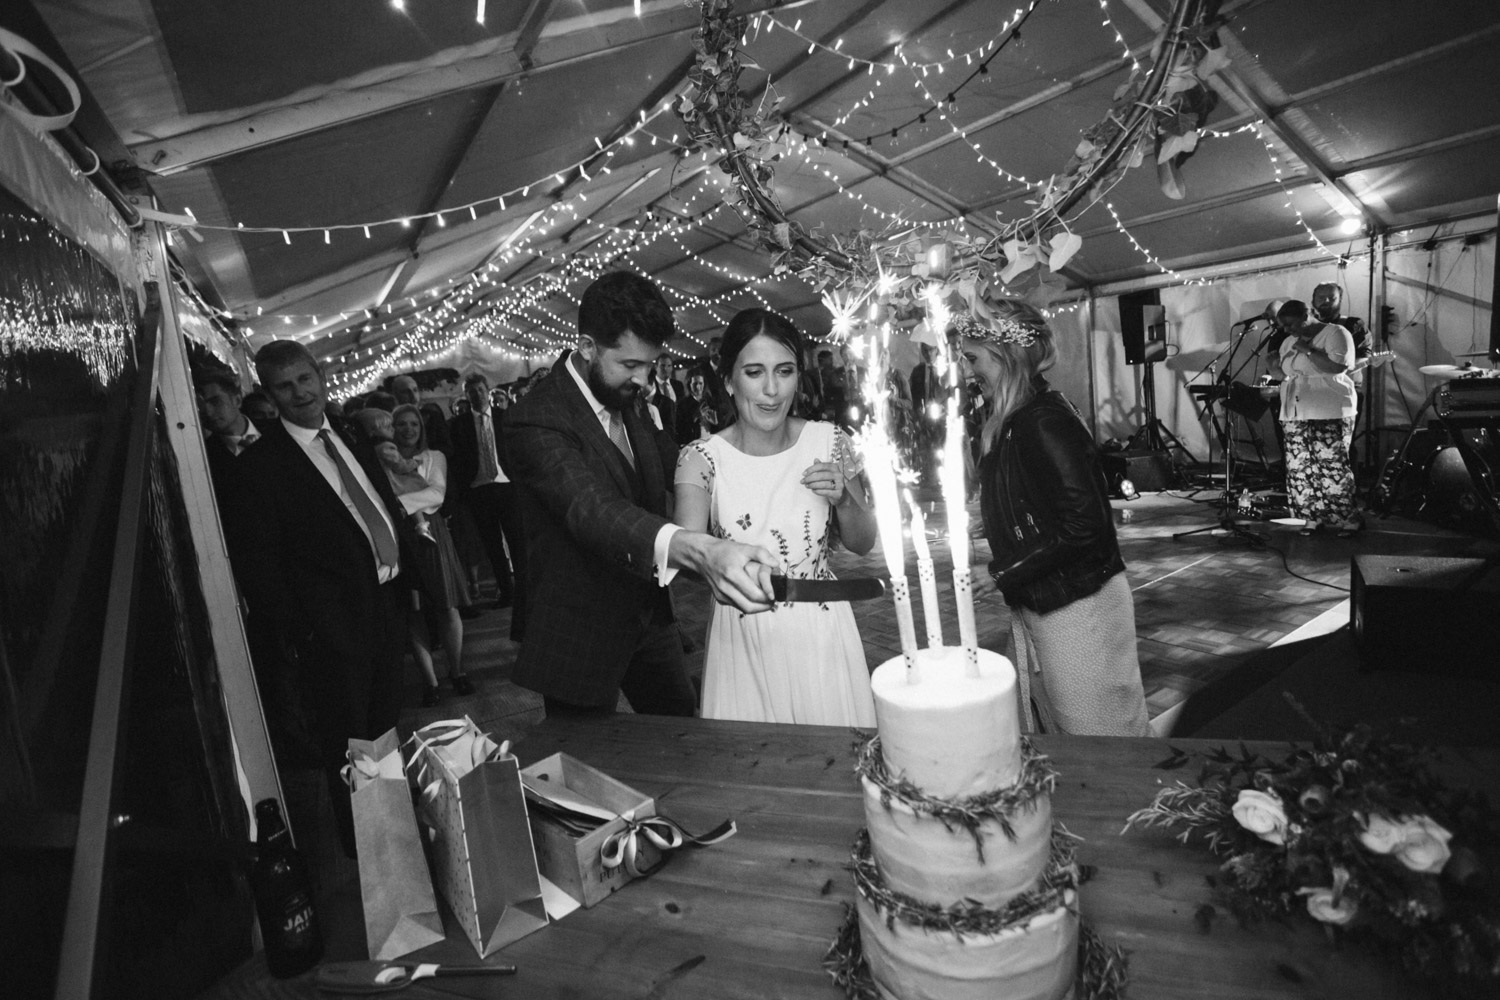 the newlyweds lighting fireworks on the wedding cake